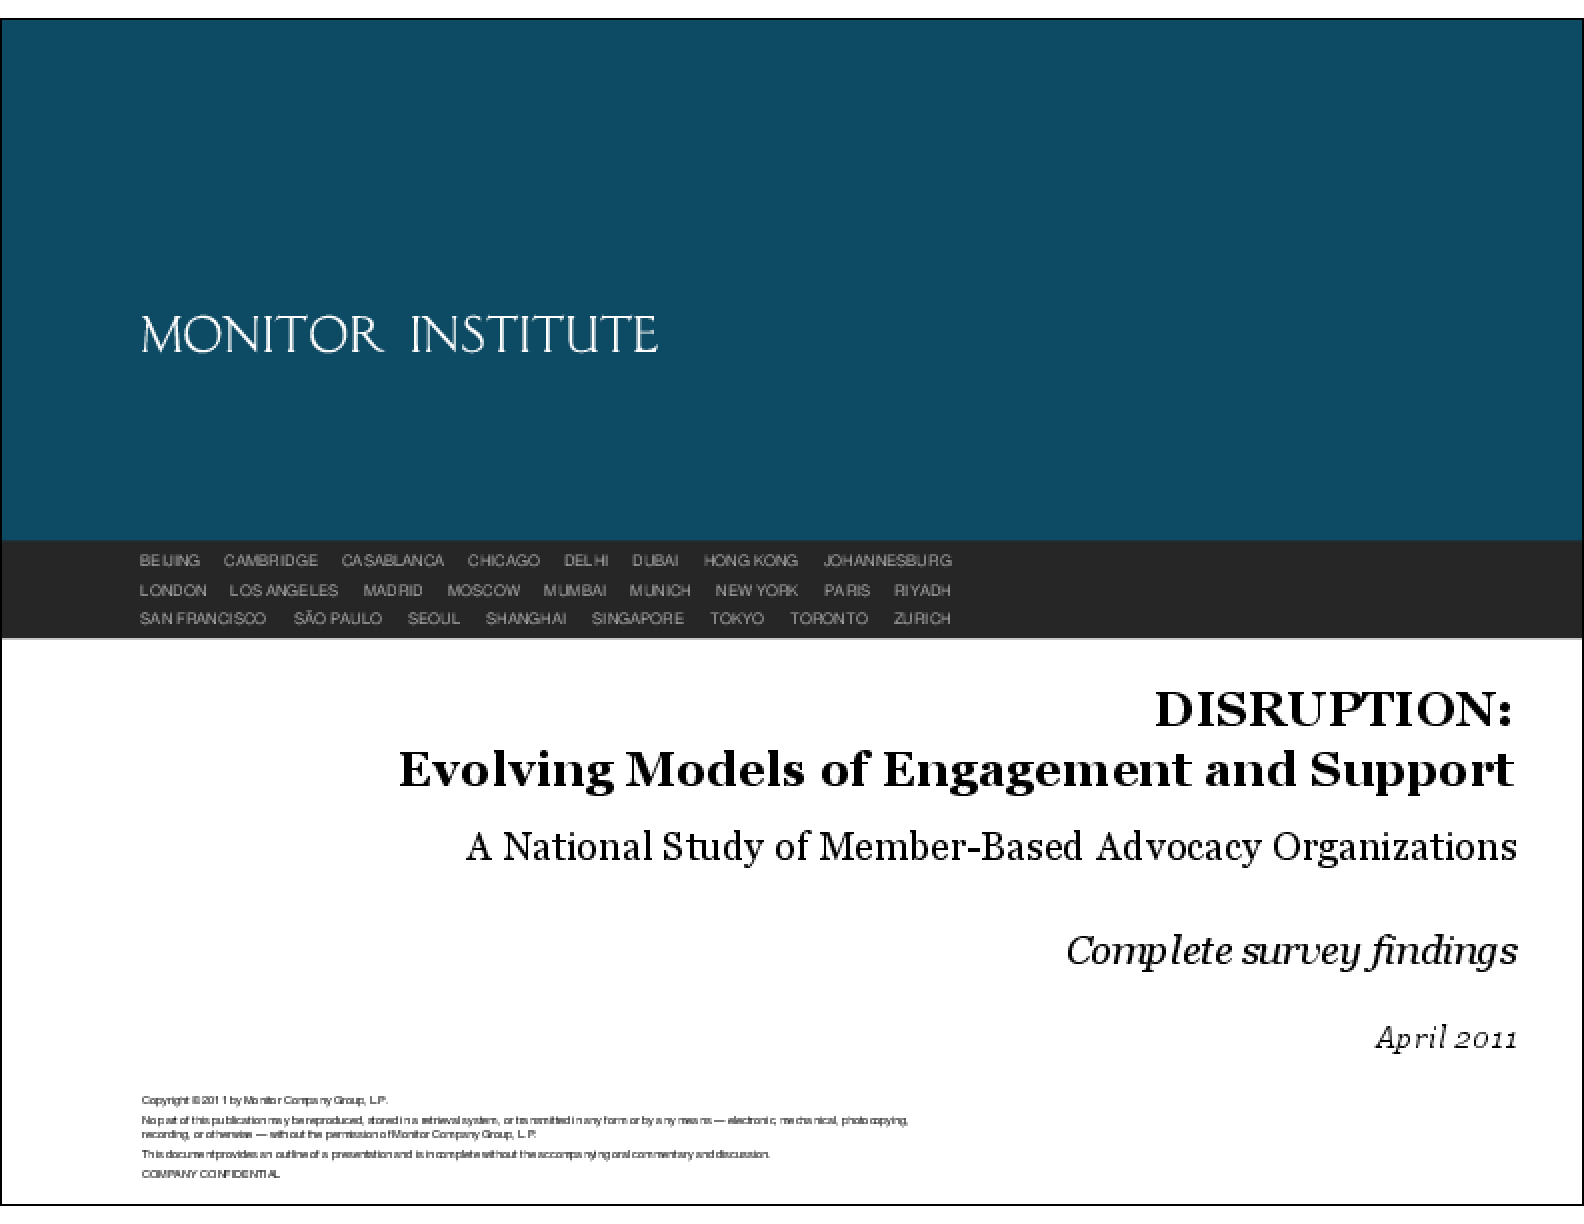 DISRUPTION: Evolving Models of Engagement and Support